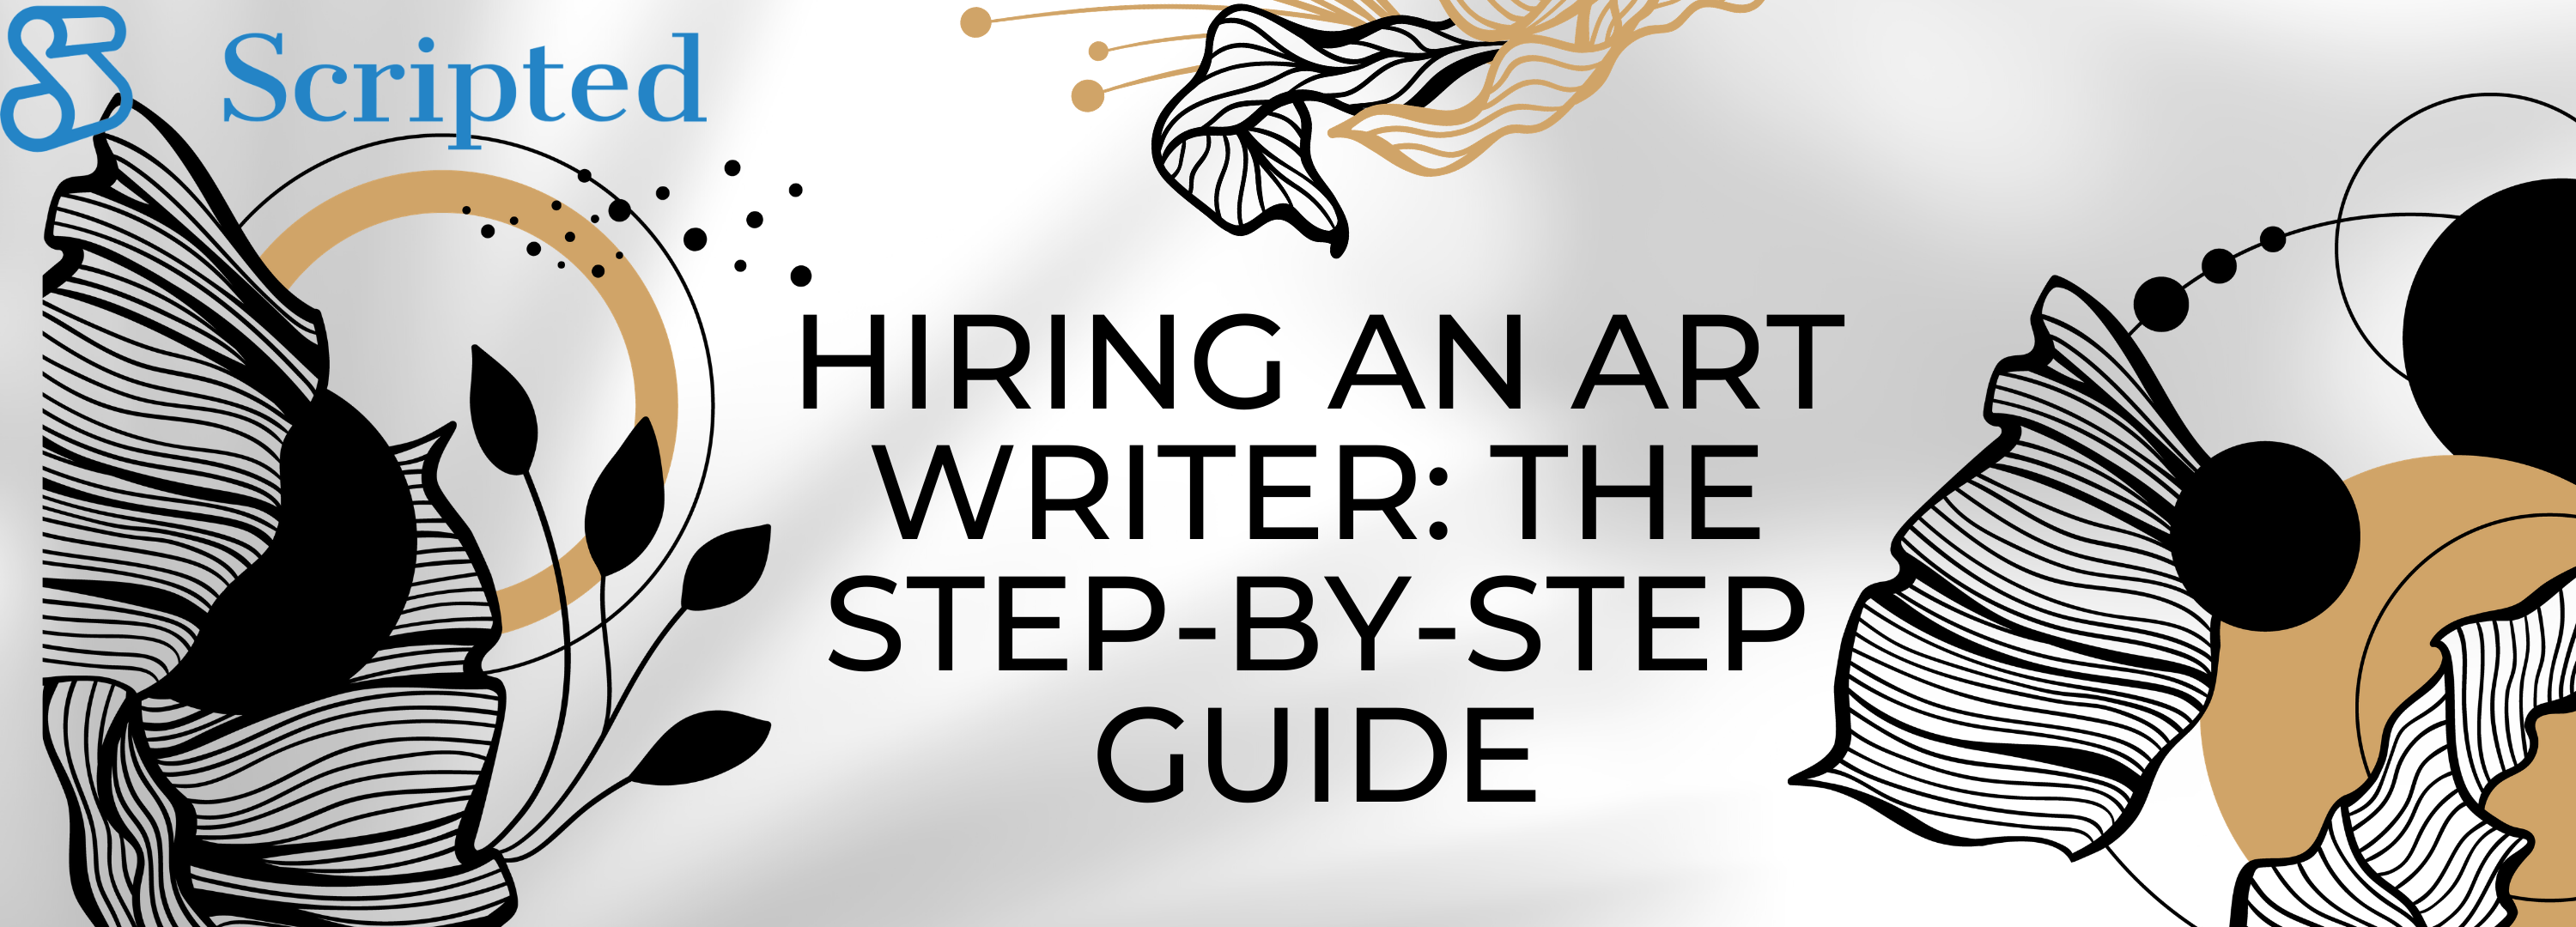 Hiring an Art Writer: The Step-by-Step Guide